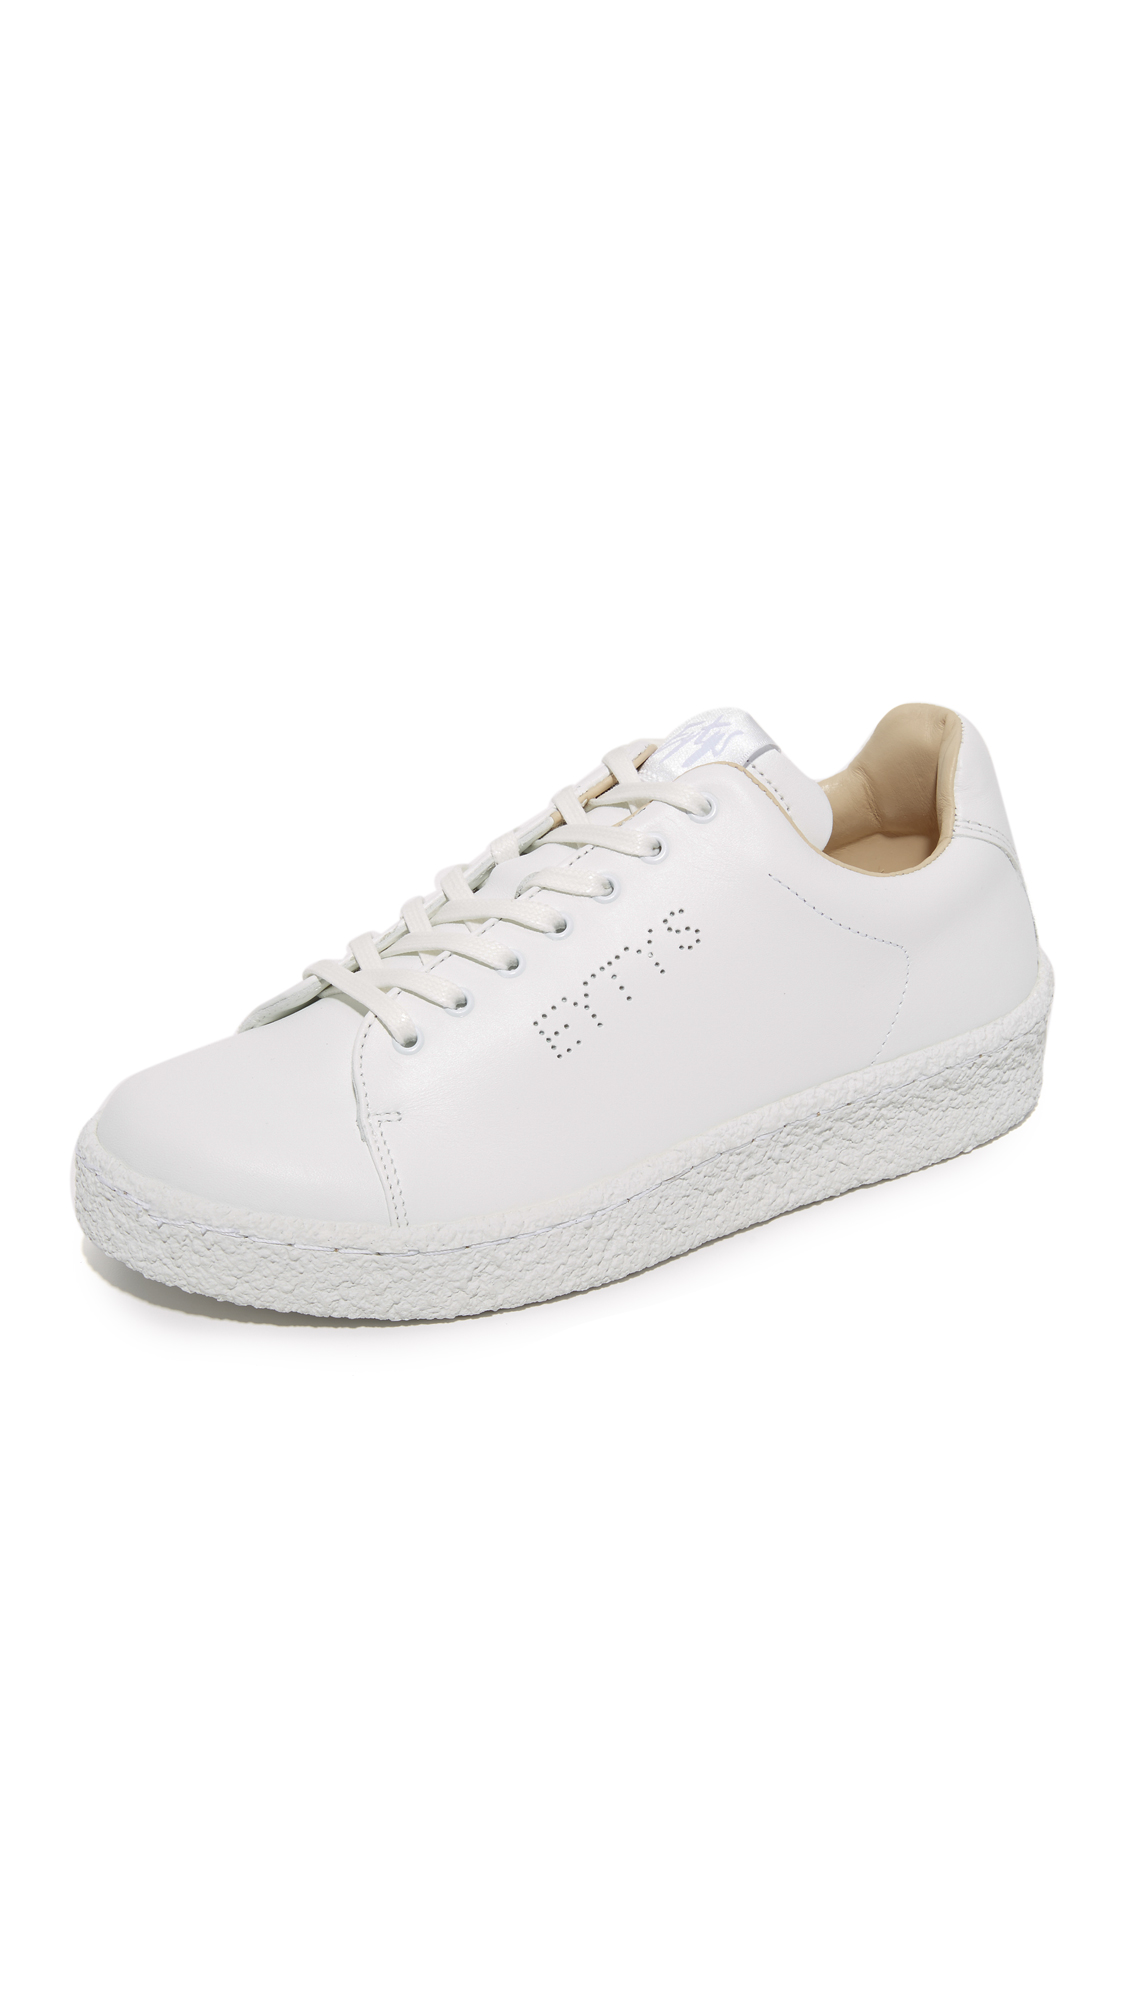 Eytys Ace Leather Sneakers - White